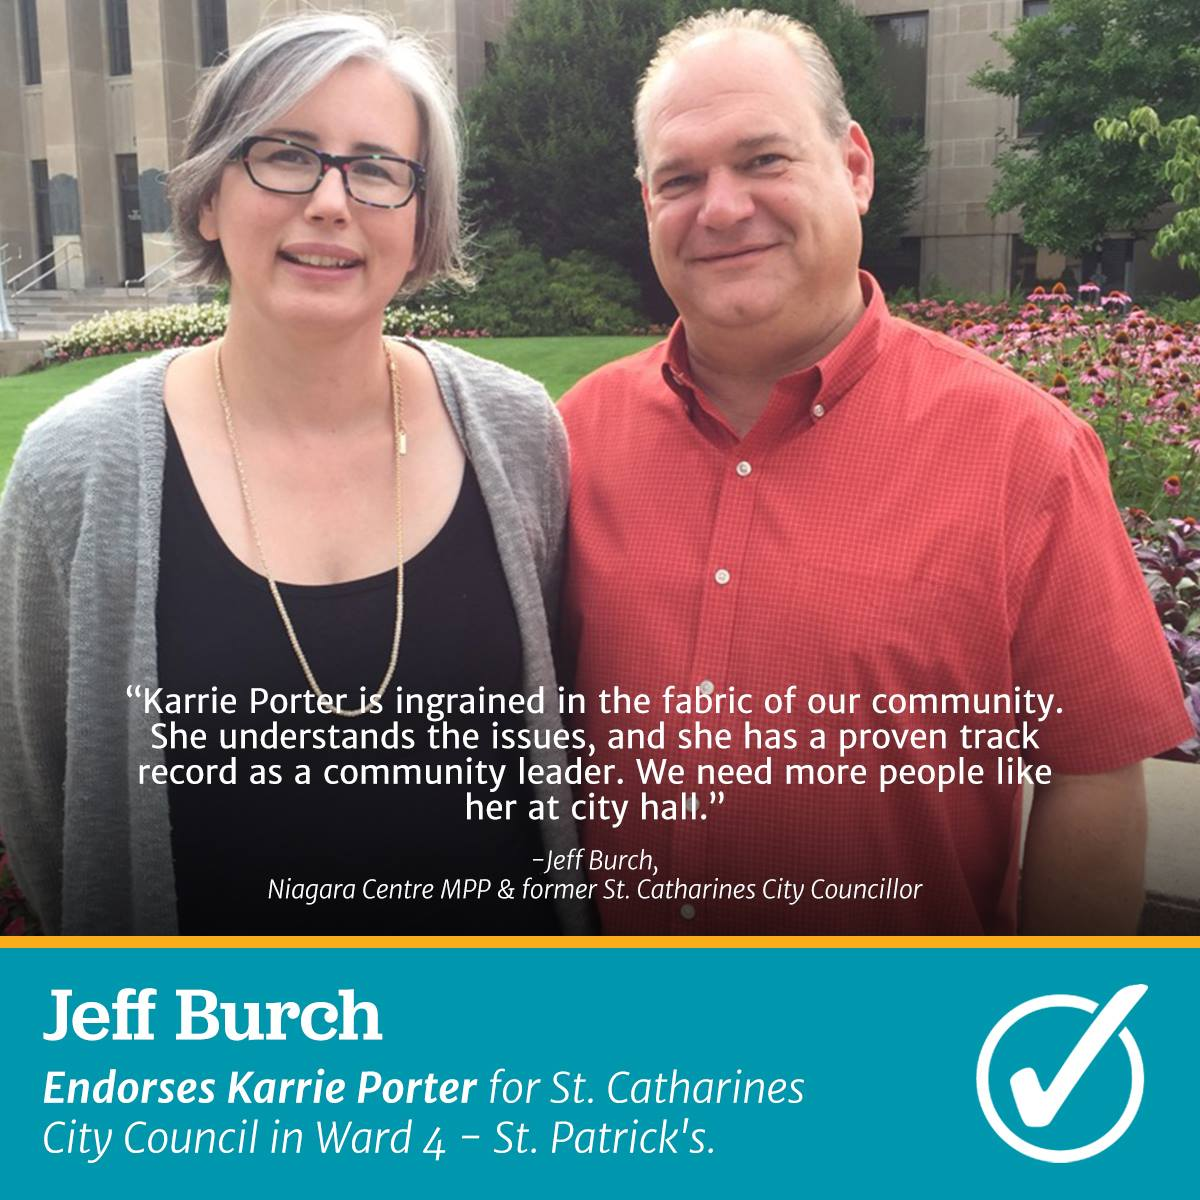 Karrie and Jeff Burch